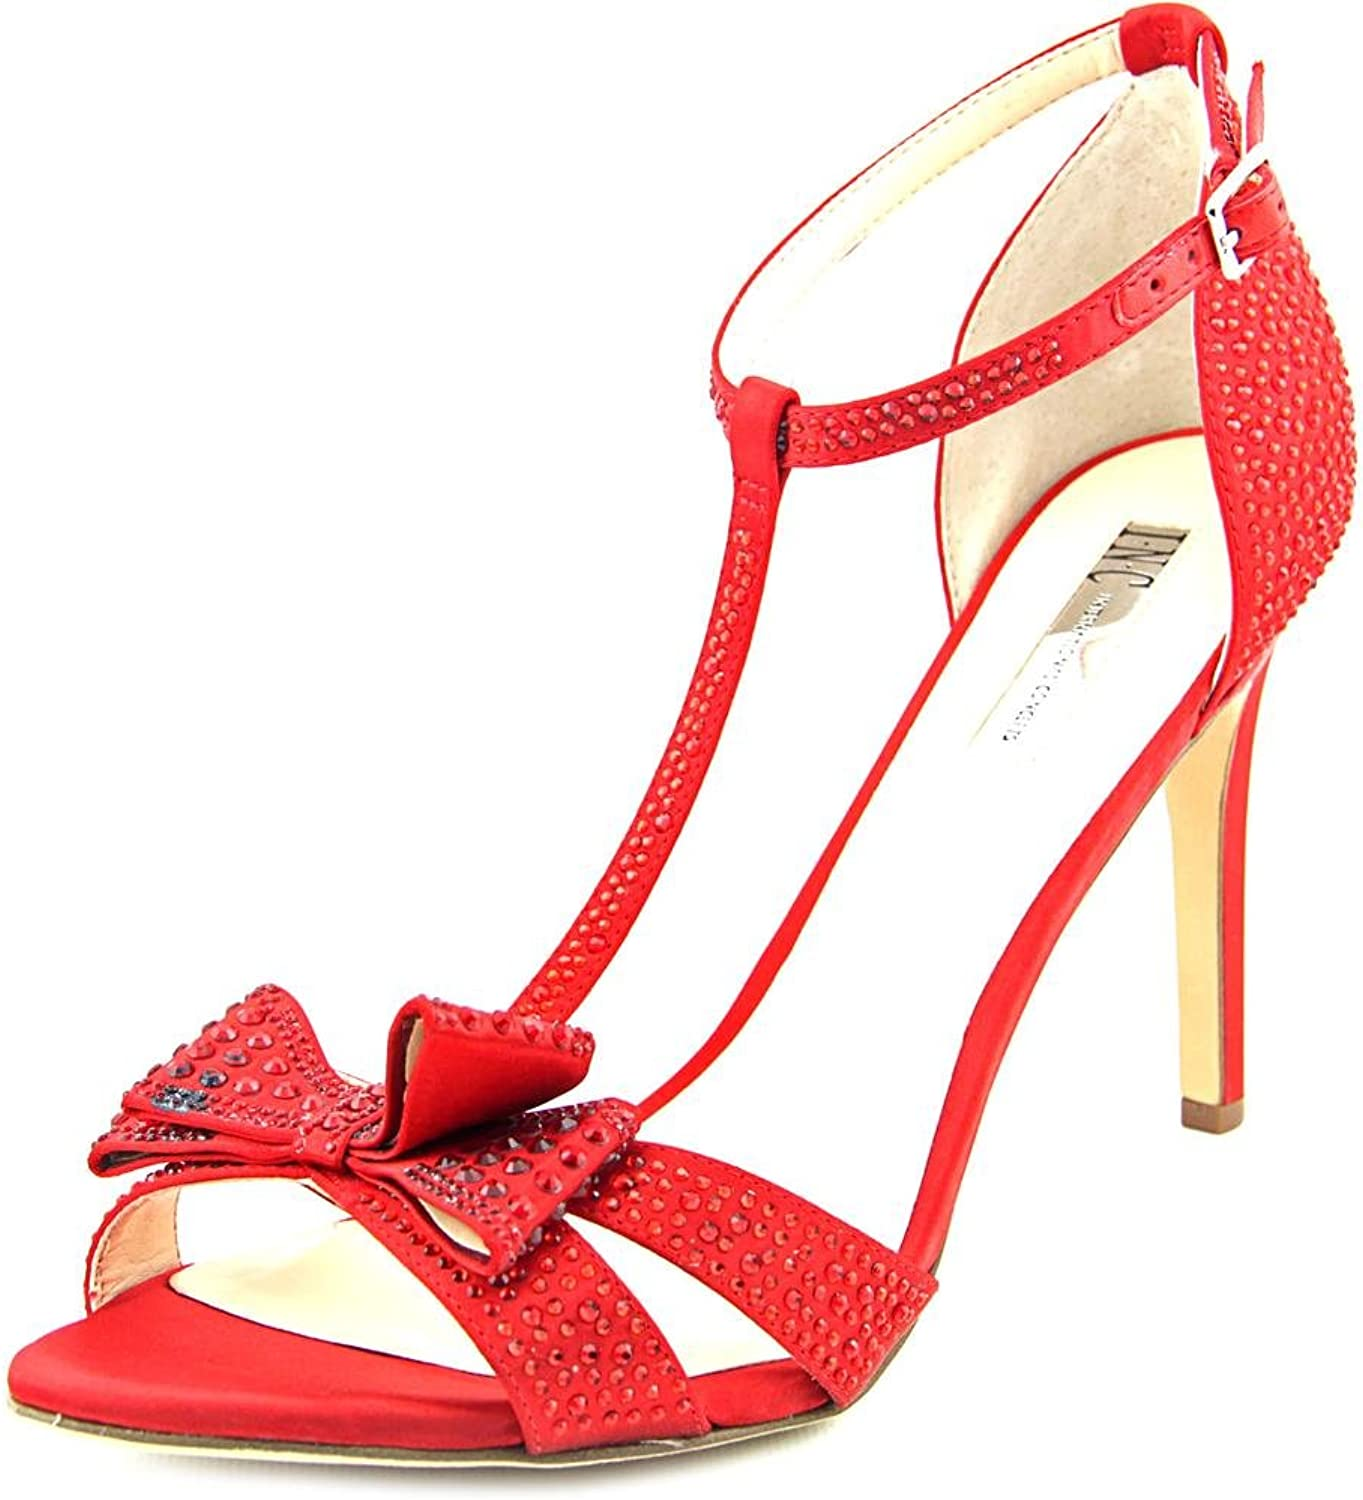 INC International Concepts Reesie 2 Women Red Sandals, Spicy Red, Size 7.5